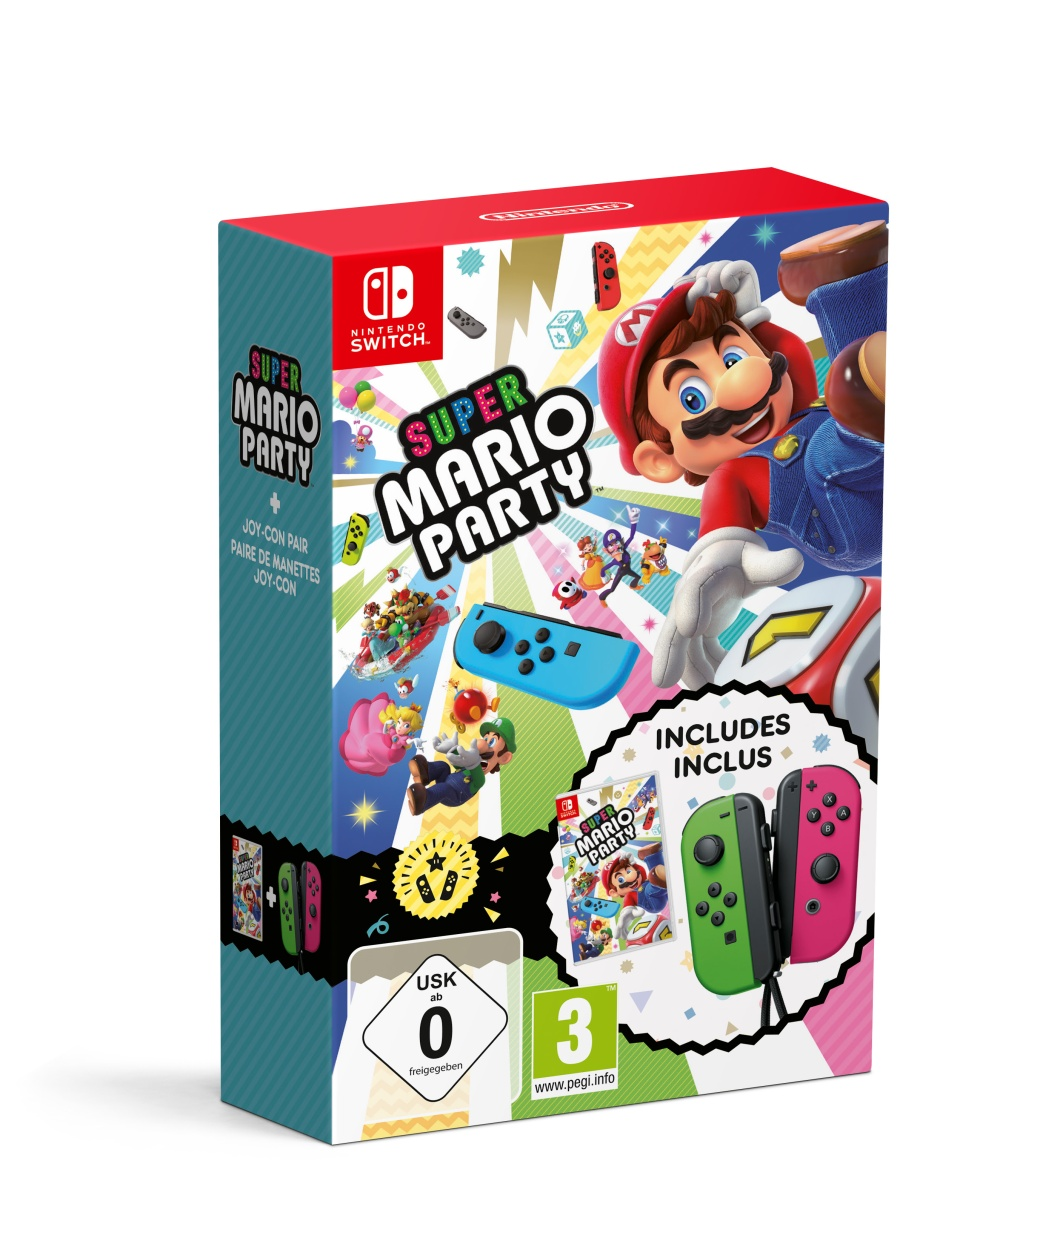 marioparty pack